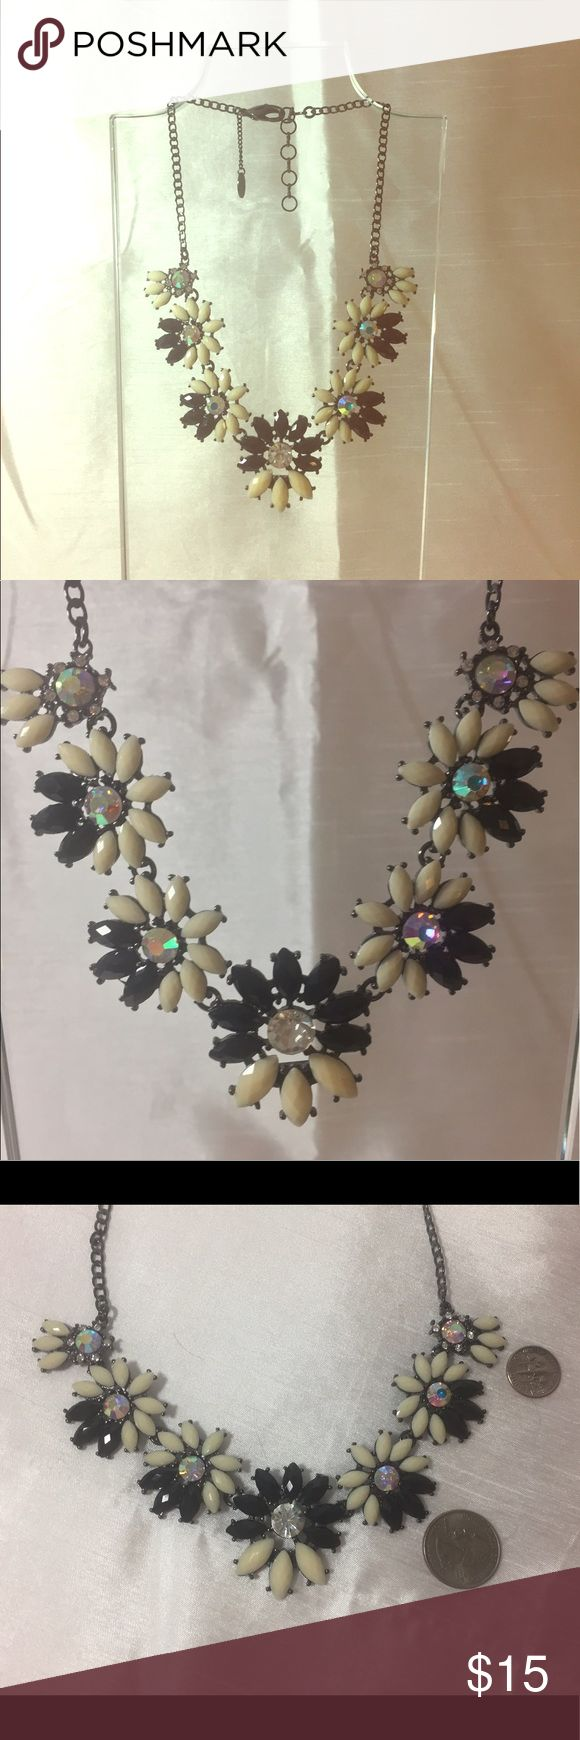 Amrita Singh Cream/Black Necklace Amrita Singh Cream/Black costume necklace with faux diamonds. Four clasp options to modify length of necklace according to outfit. Worn once for an event. EUC. Amrita Singh Jewelry Necklaces